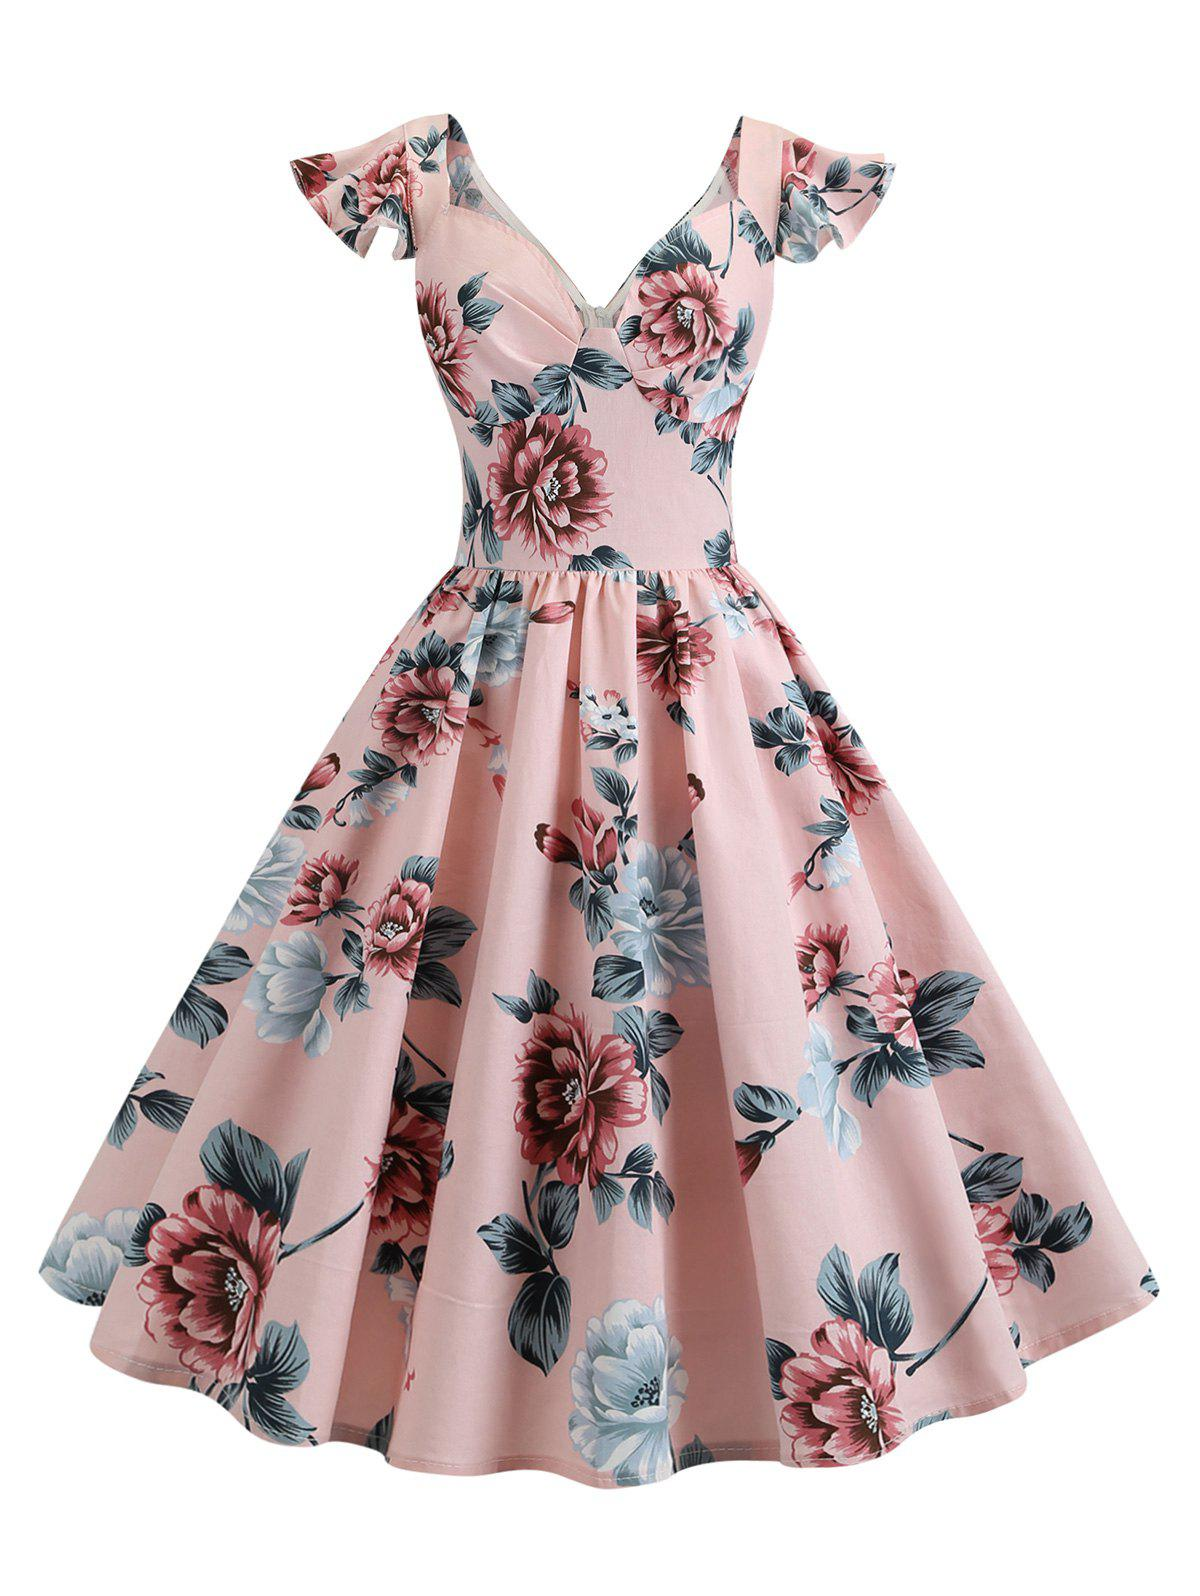 Fashion Vintage High Waisted Floral Dress